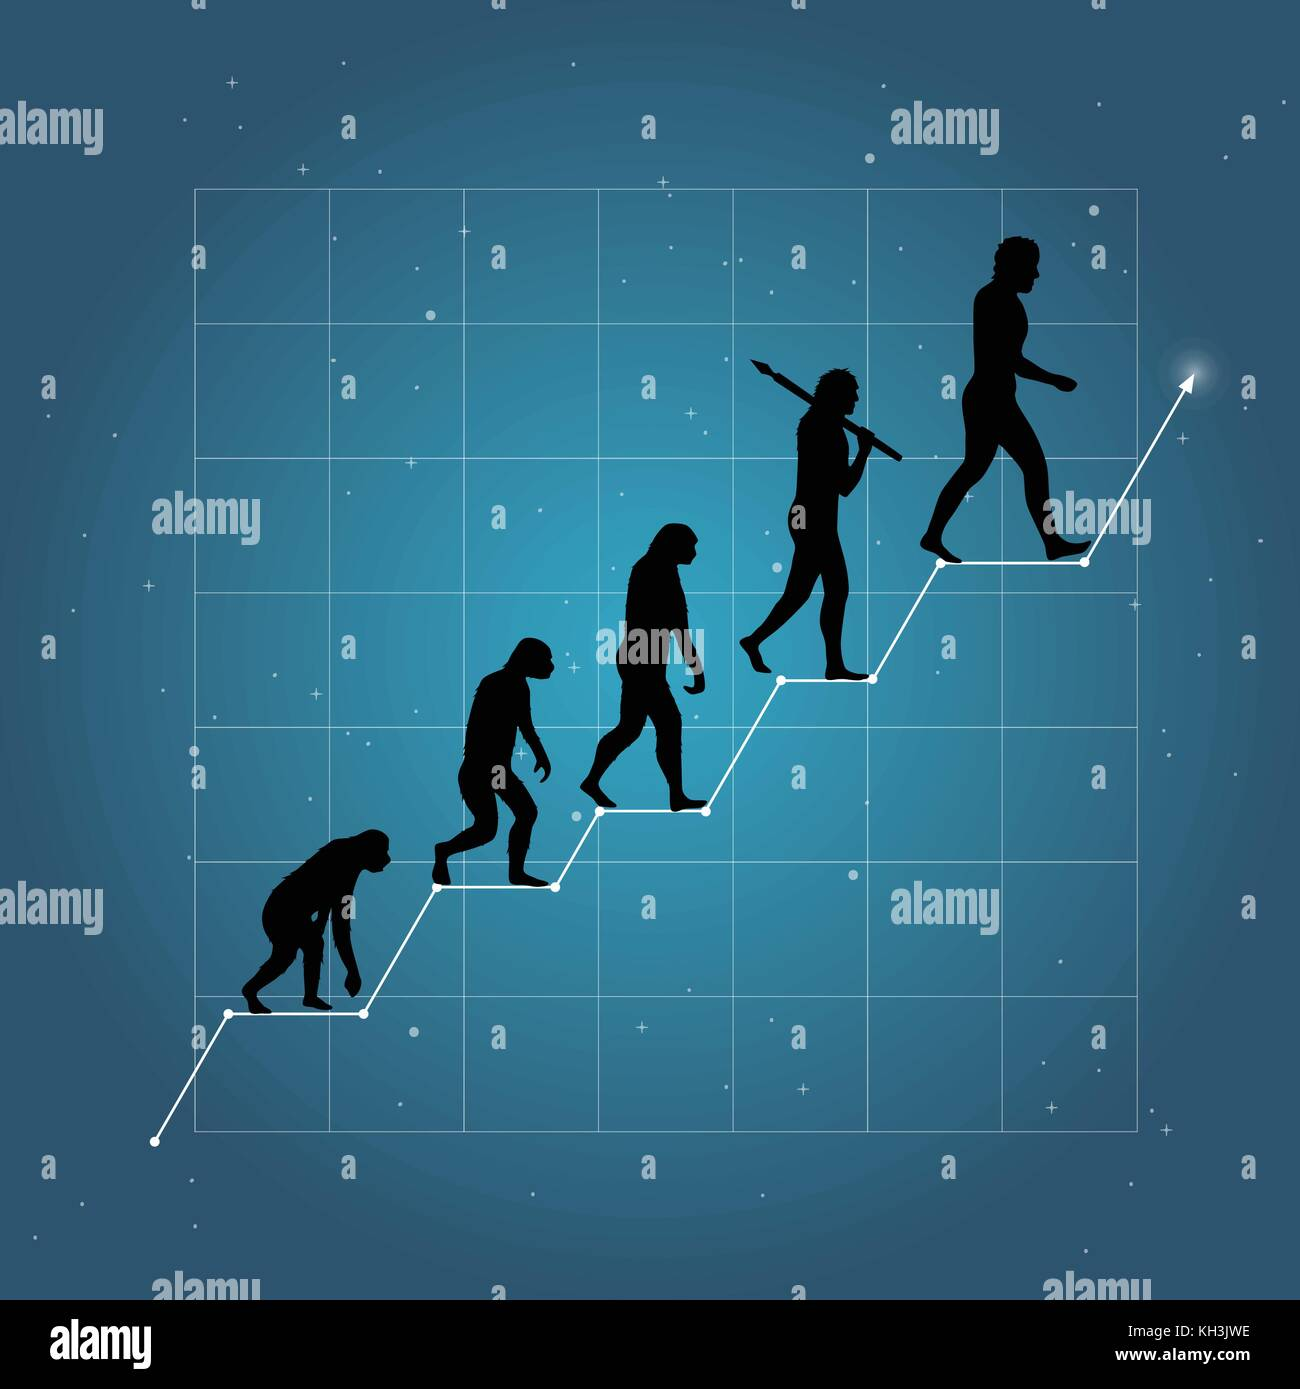 Growth of business or economy as human evolution on chart. Blue background. - Stock Image